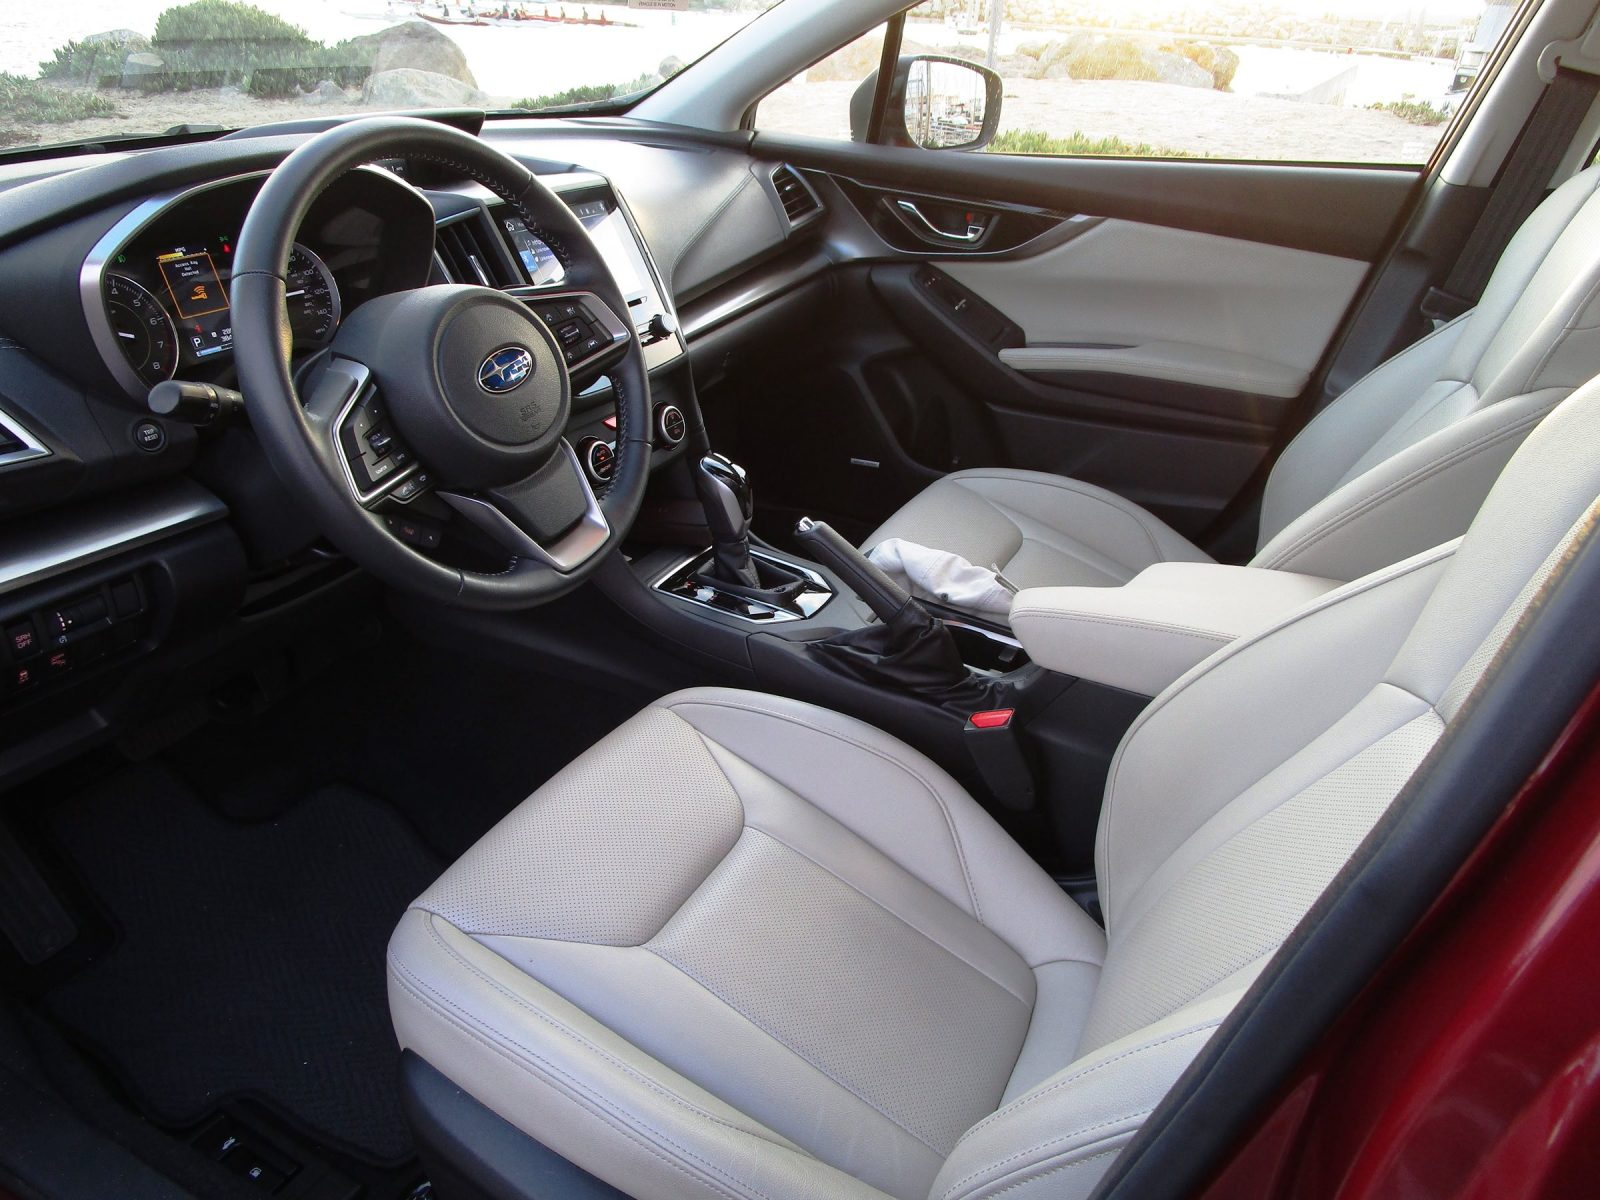 2018 subaru sti interior. interesting interior next image home  2018 subaru impreza  and subaru sti interior